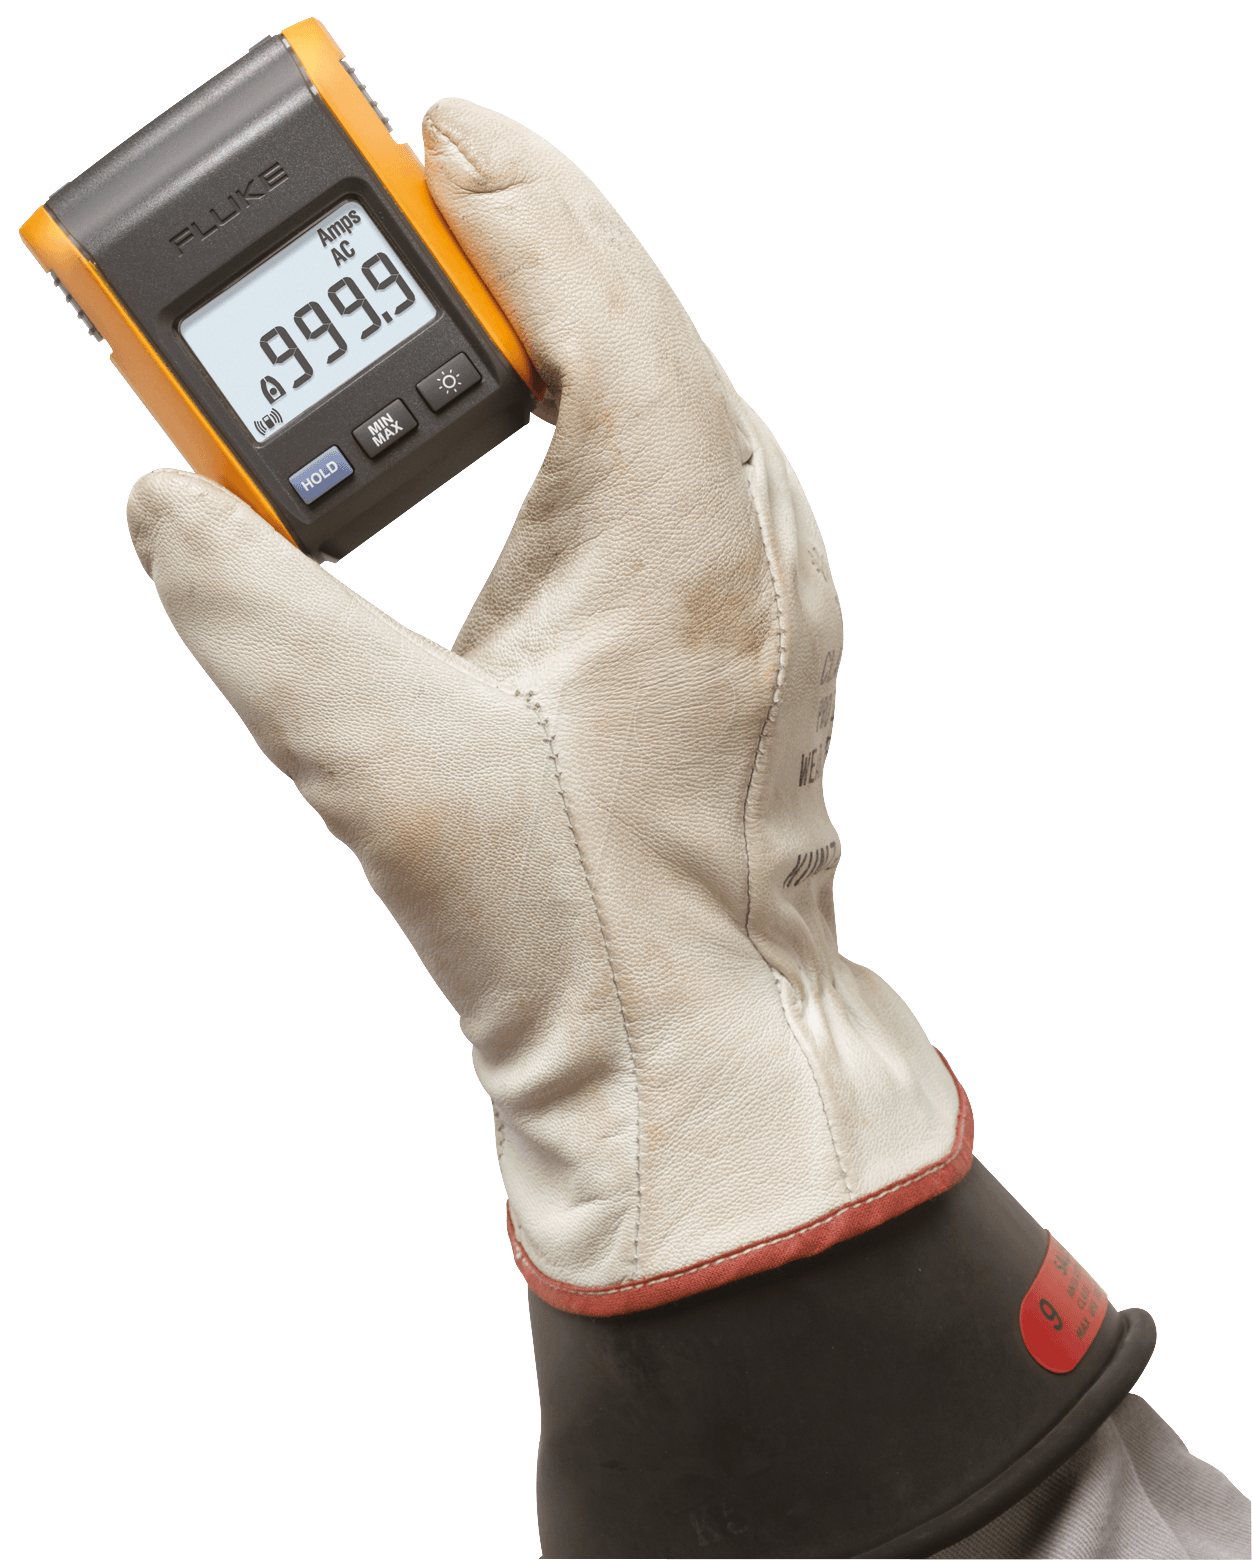 Fluke 333 Clamp Meter : Fluke trms clamp meter with removable display at